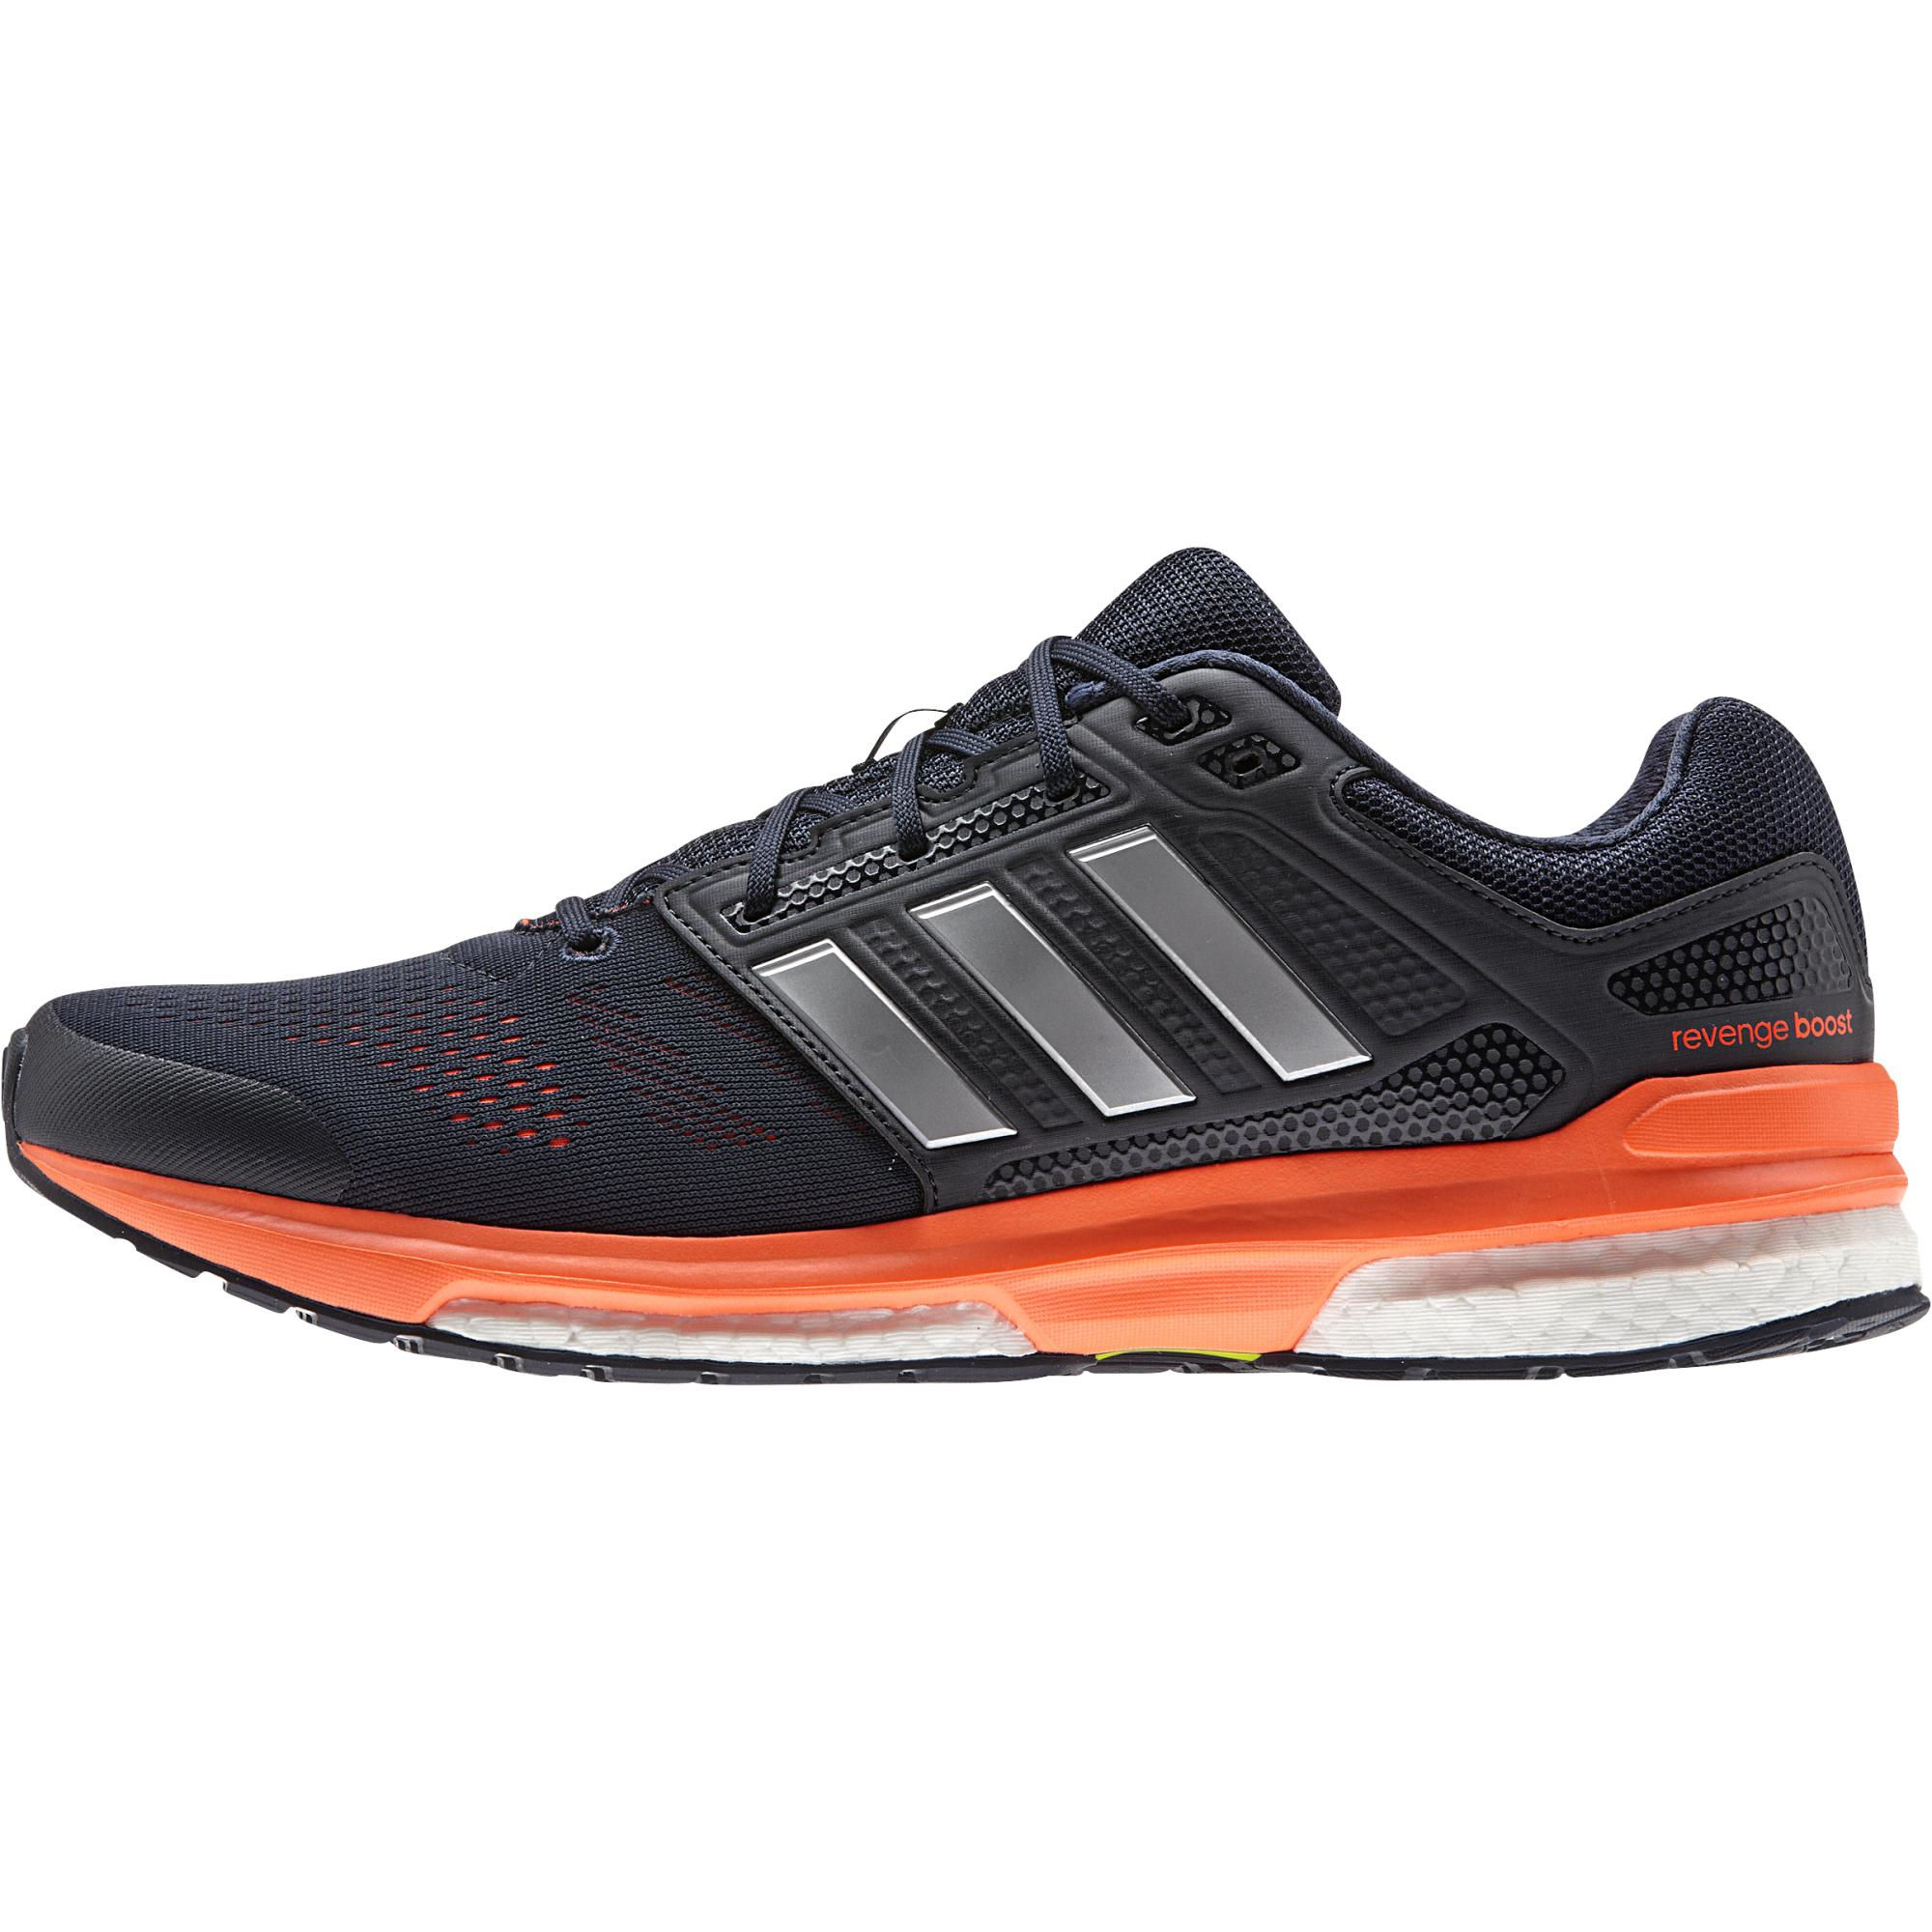 Adidas Boost Stability Shoes